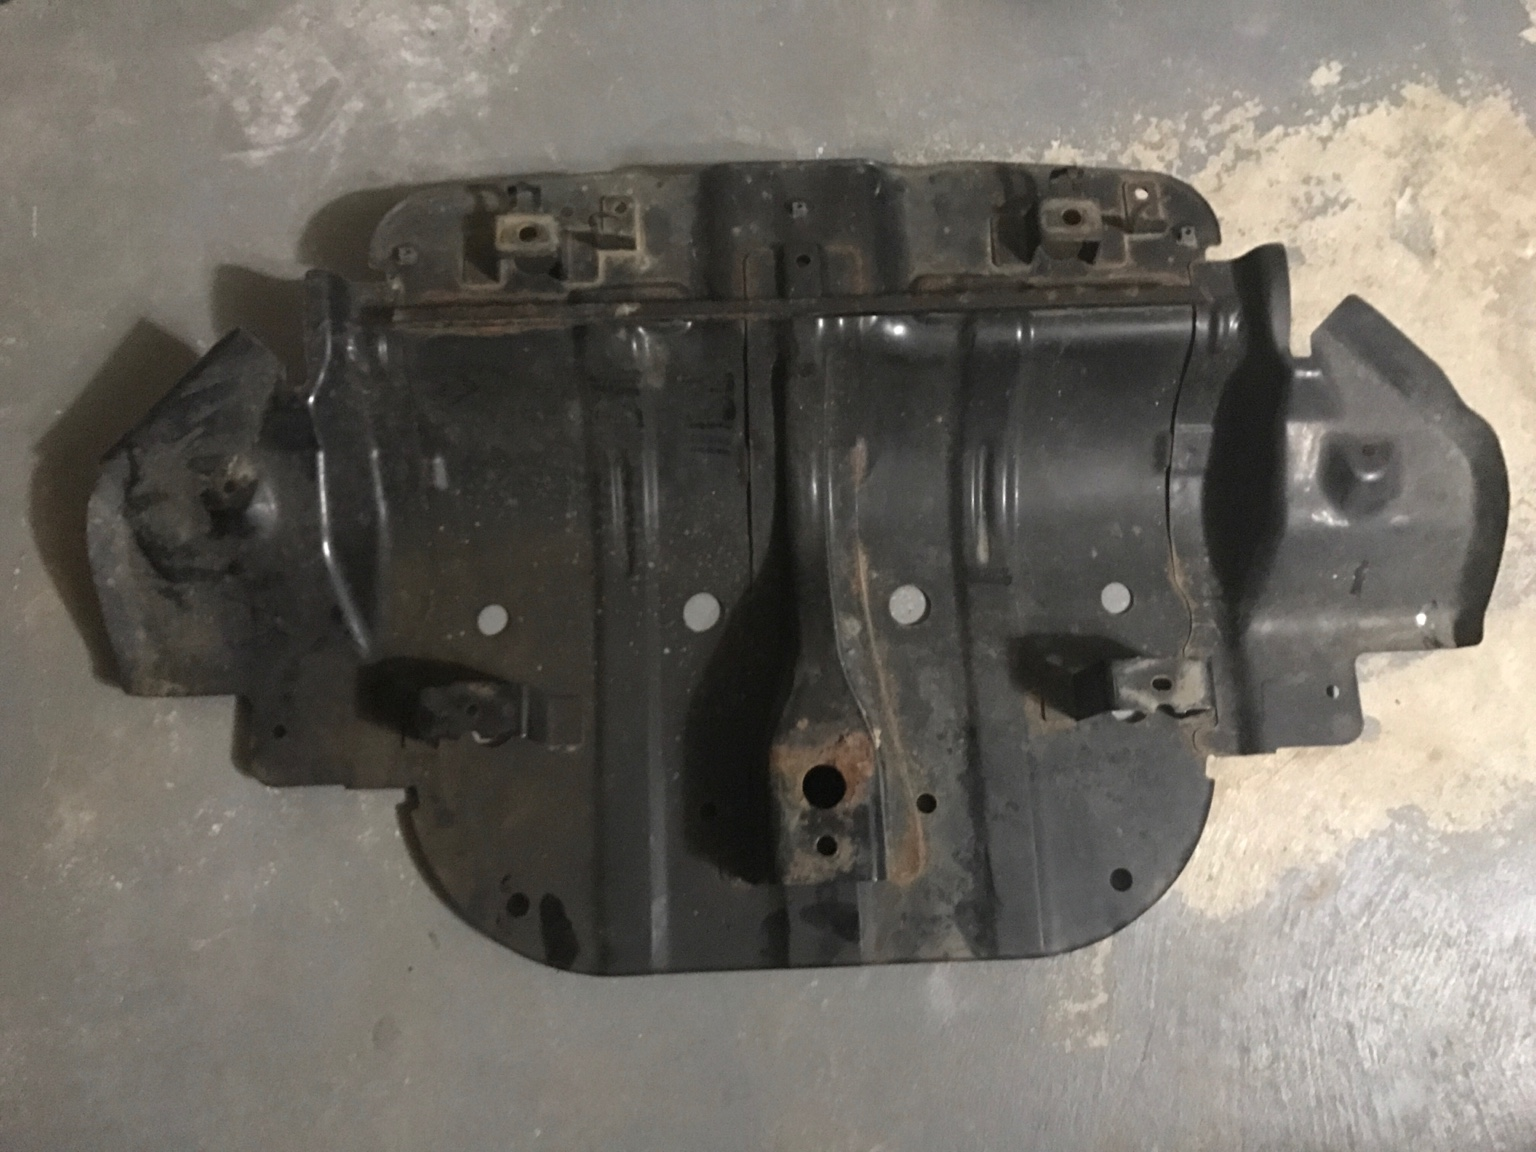 Toyota Virginia Beach >> [Looking For] Skid plate needed